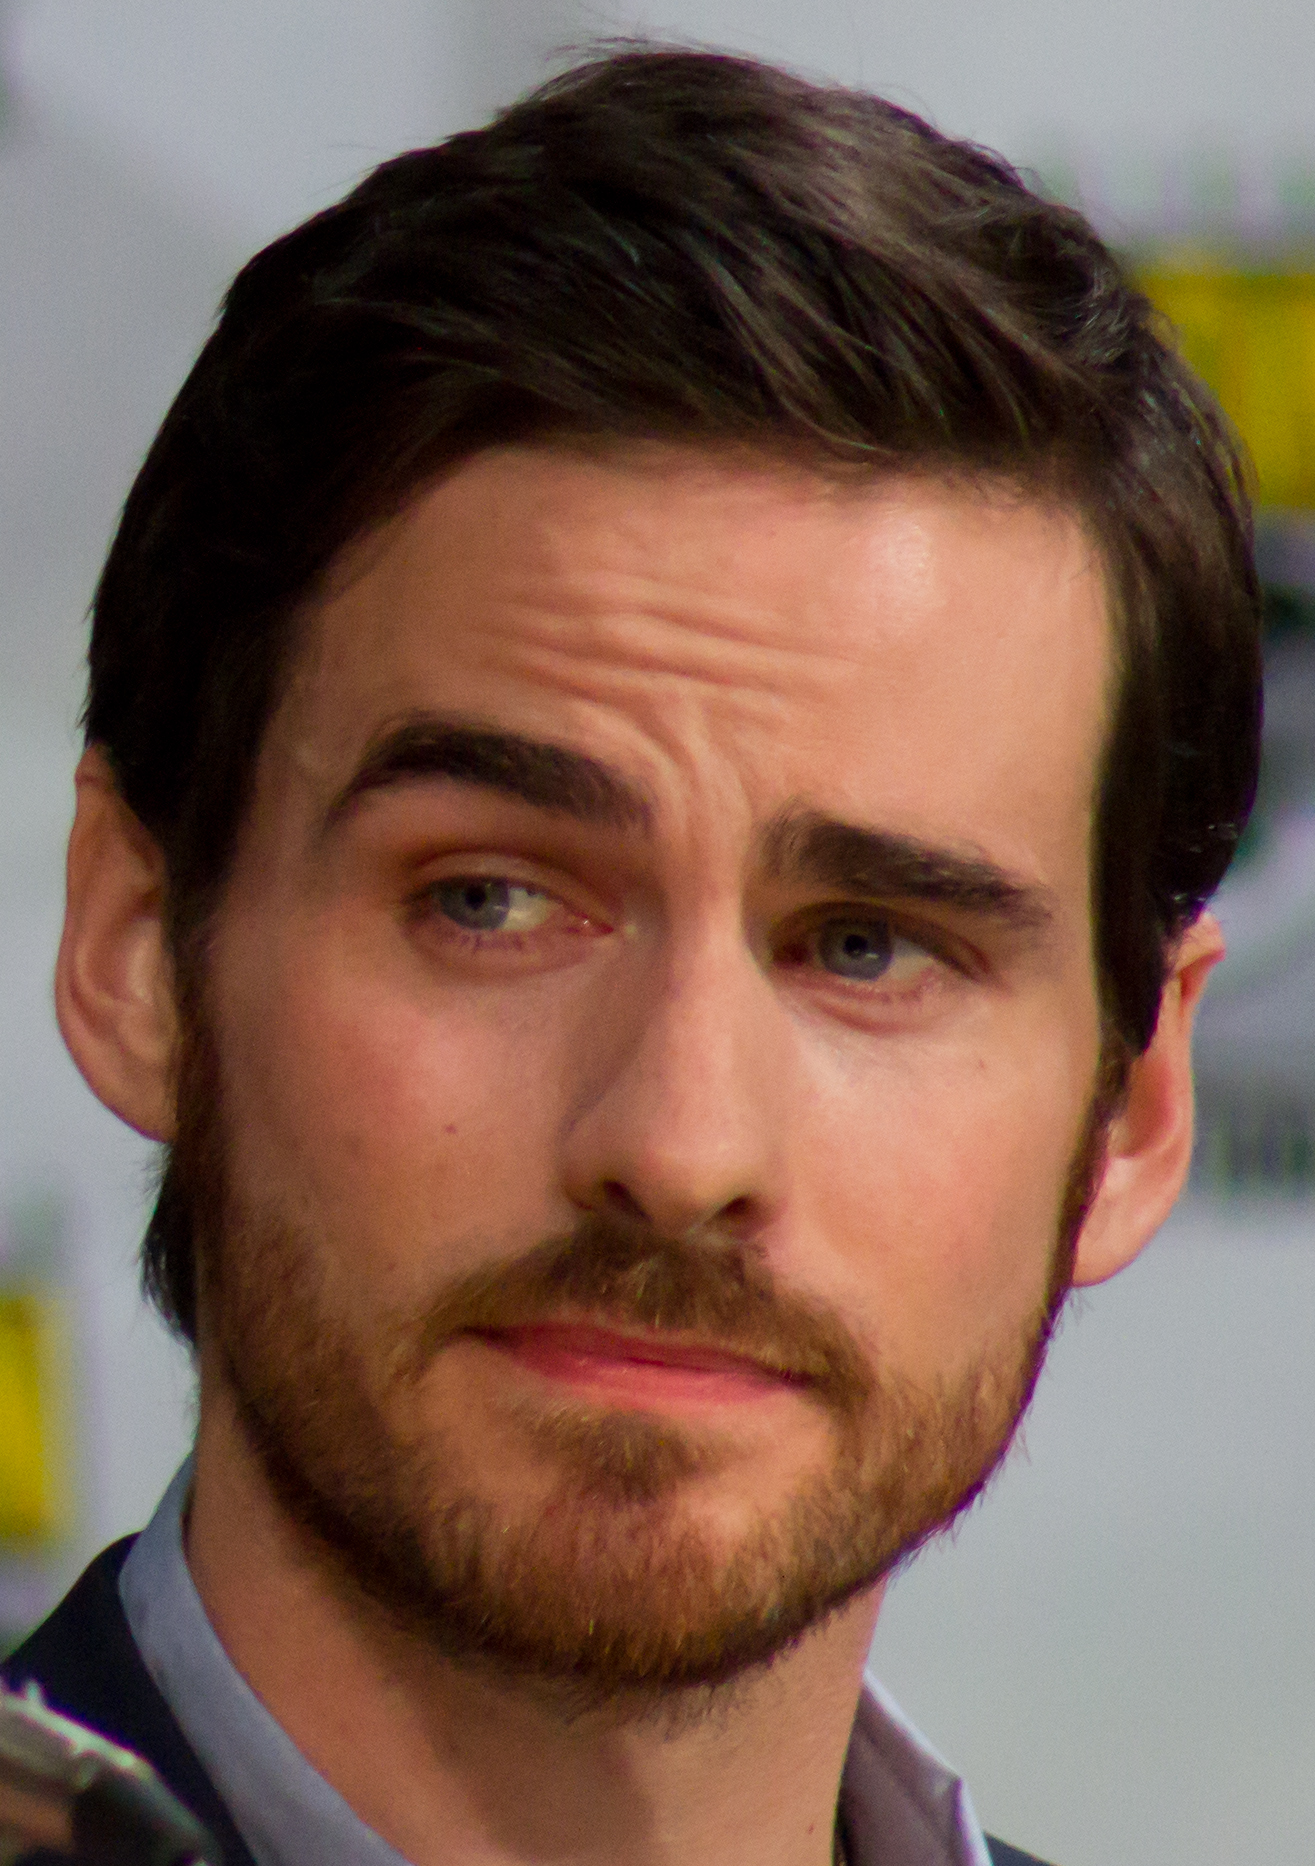 The 37-year old son of father (?) and mother(?) Colin O'Donoghue in 2018 photo. Colin O'Donoghue earned a  million dollar salary - leaving the net worth at  million in 2018